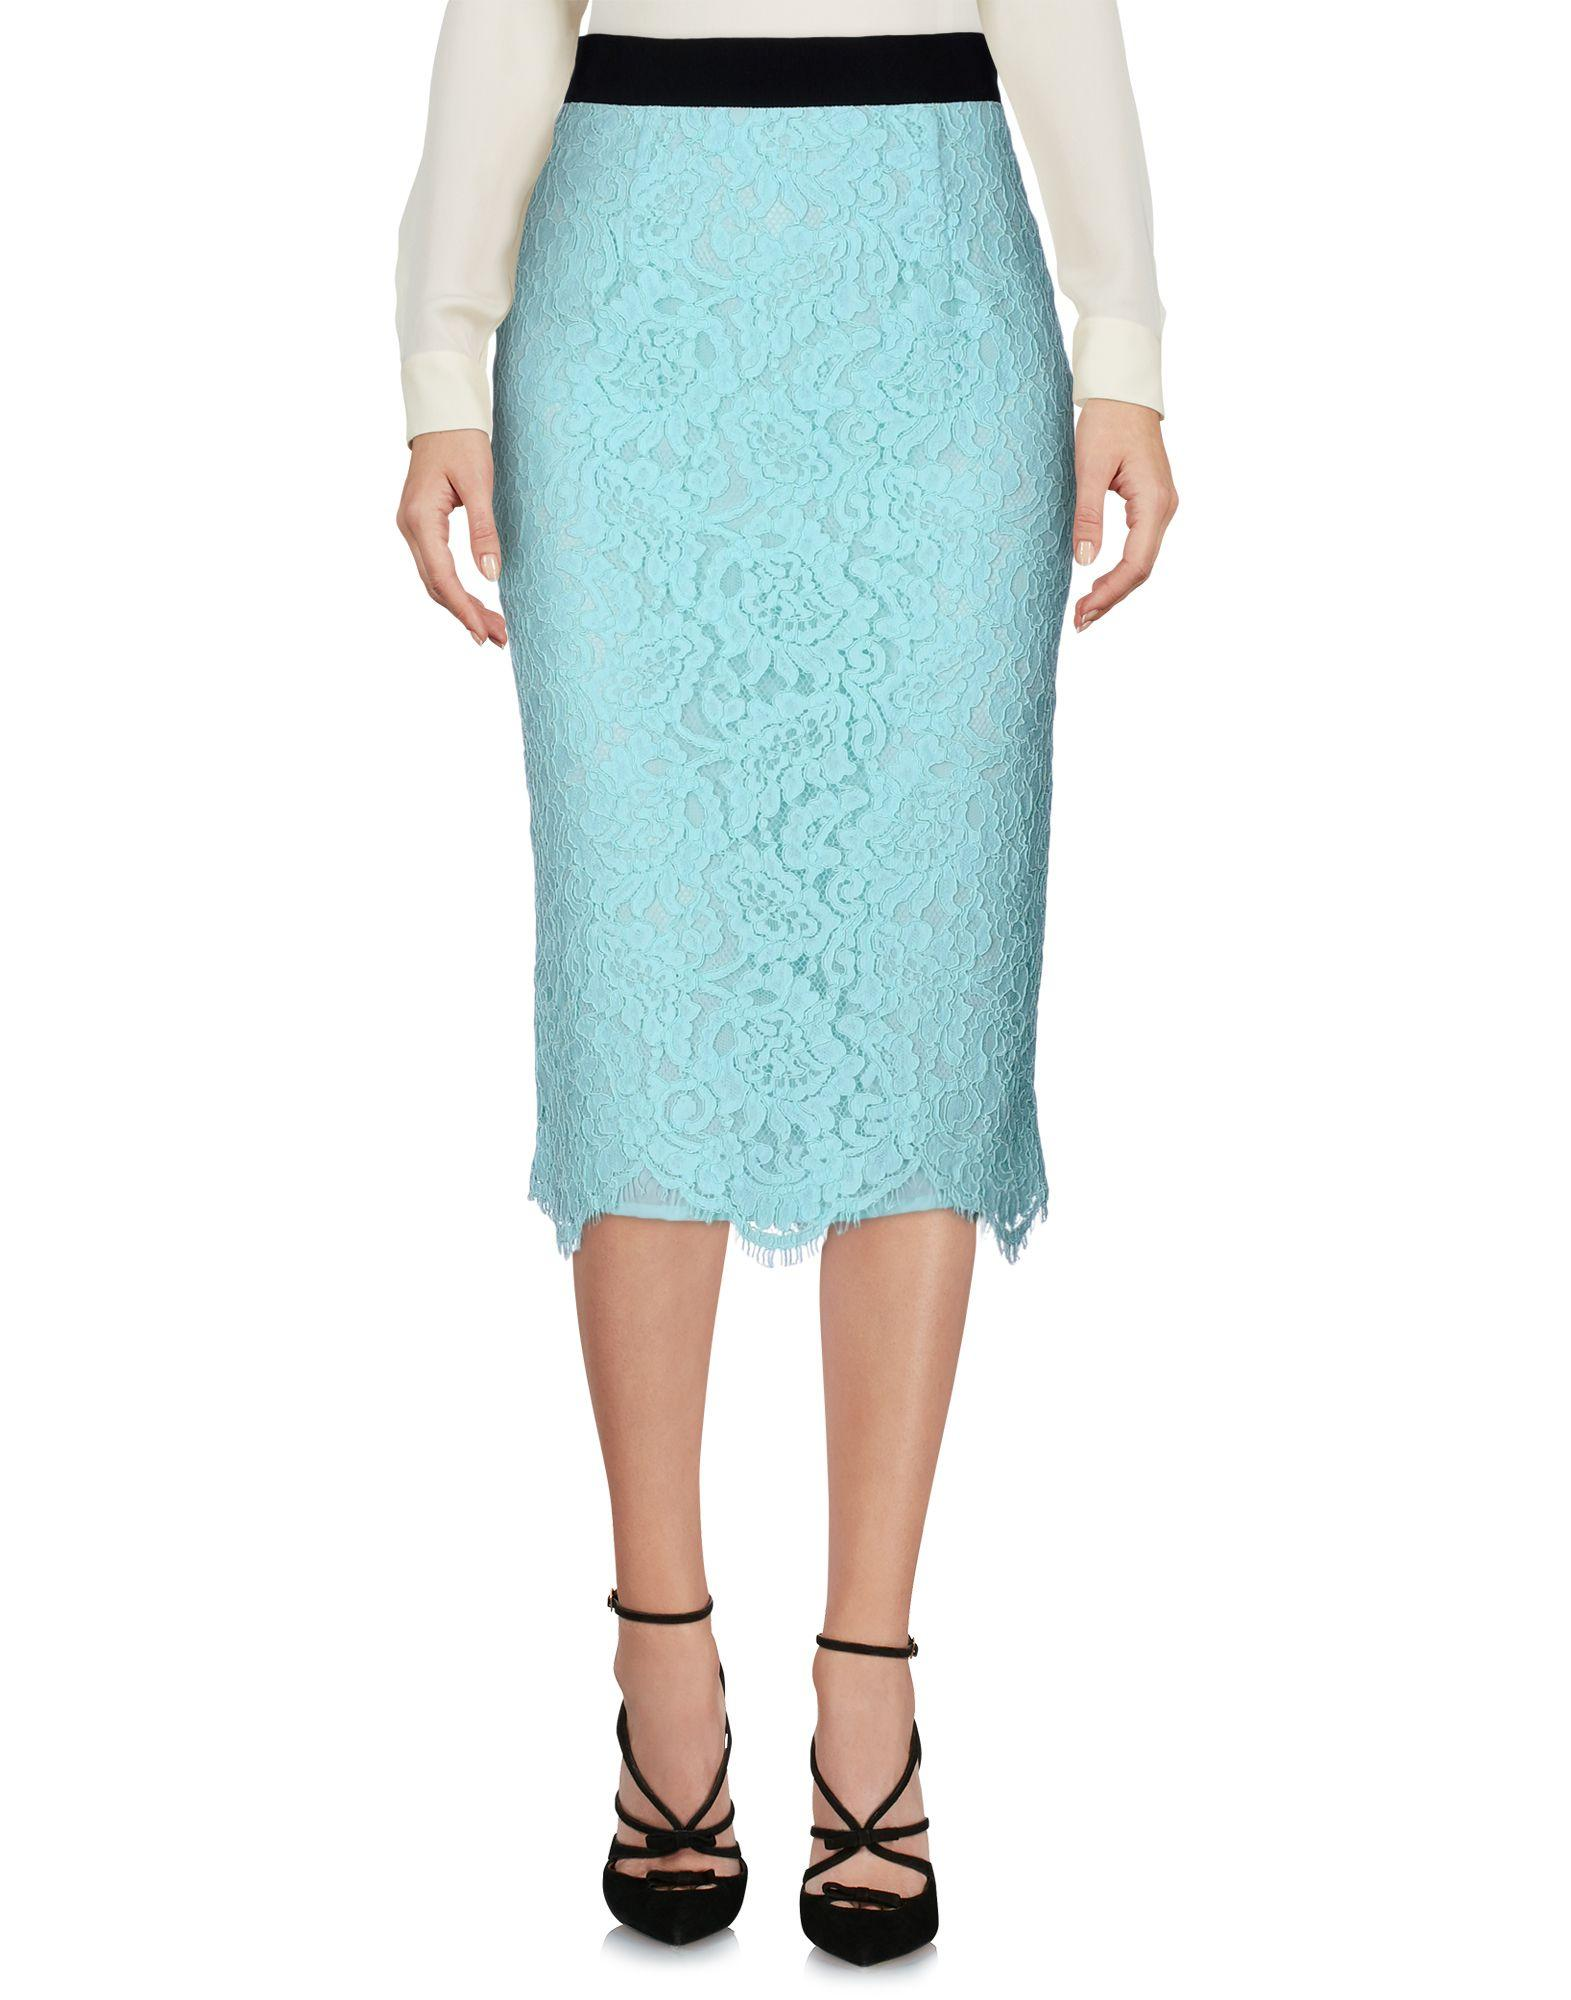 Marco Bologna Midi Skirts In Sky Blue